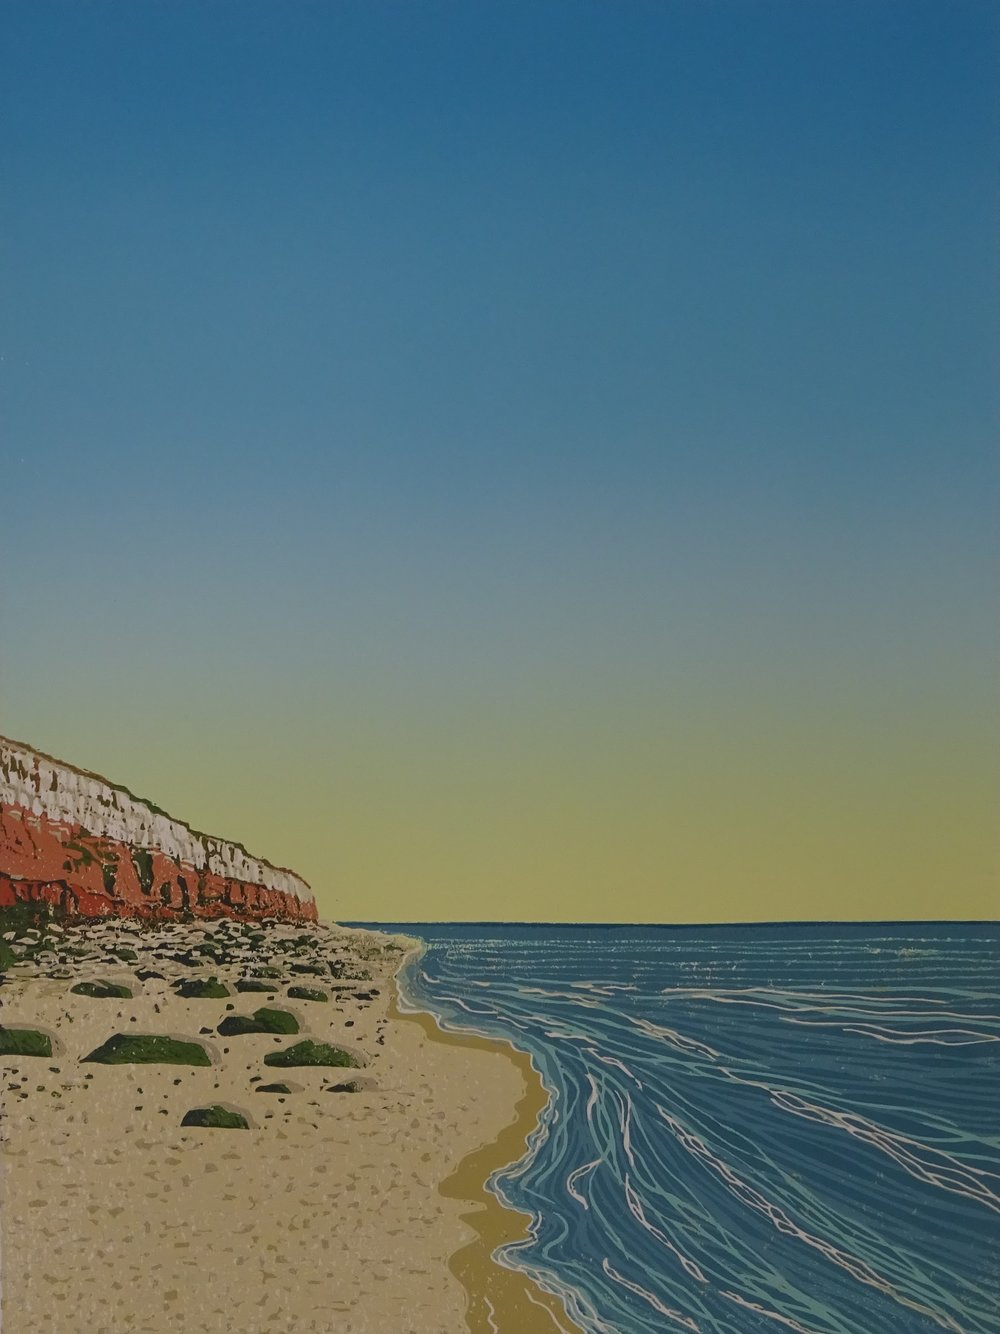 Drawing and Printmaking Prize Winner (£200 Jackson's Art Gift Voucher): 'New day Hunstanton beach' by Margaret Mallows.  Read more about the artwork.